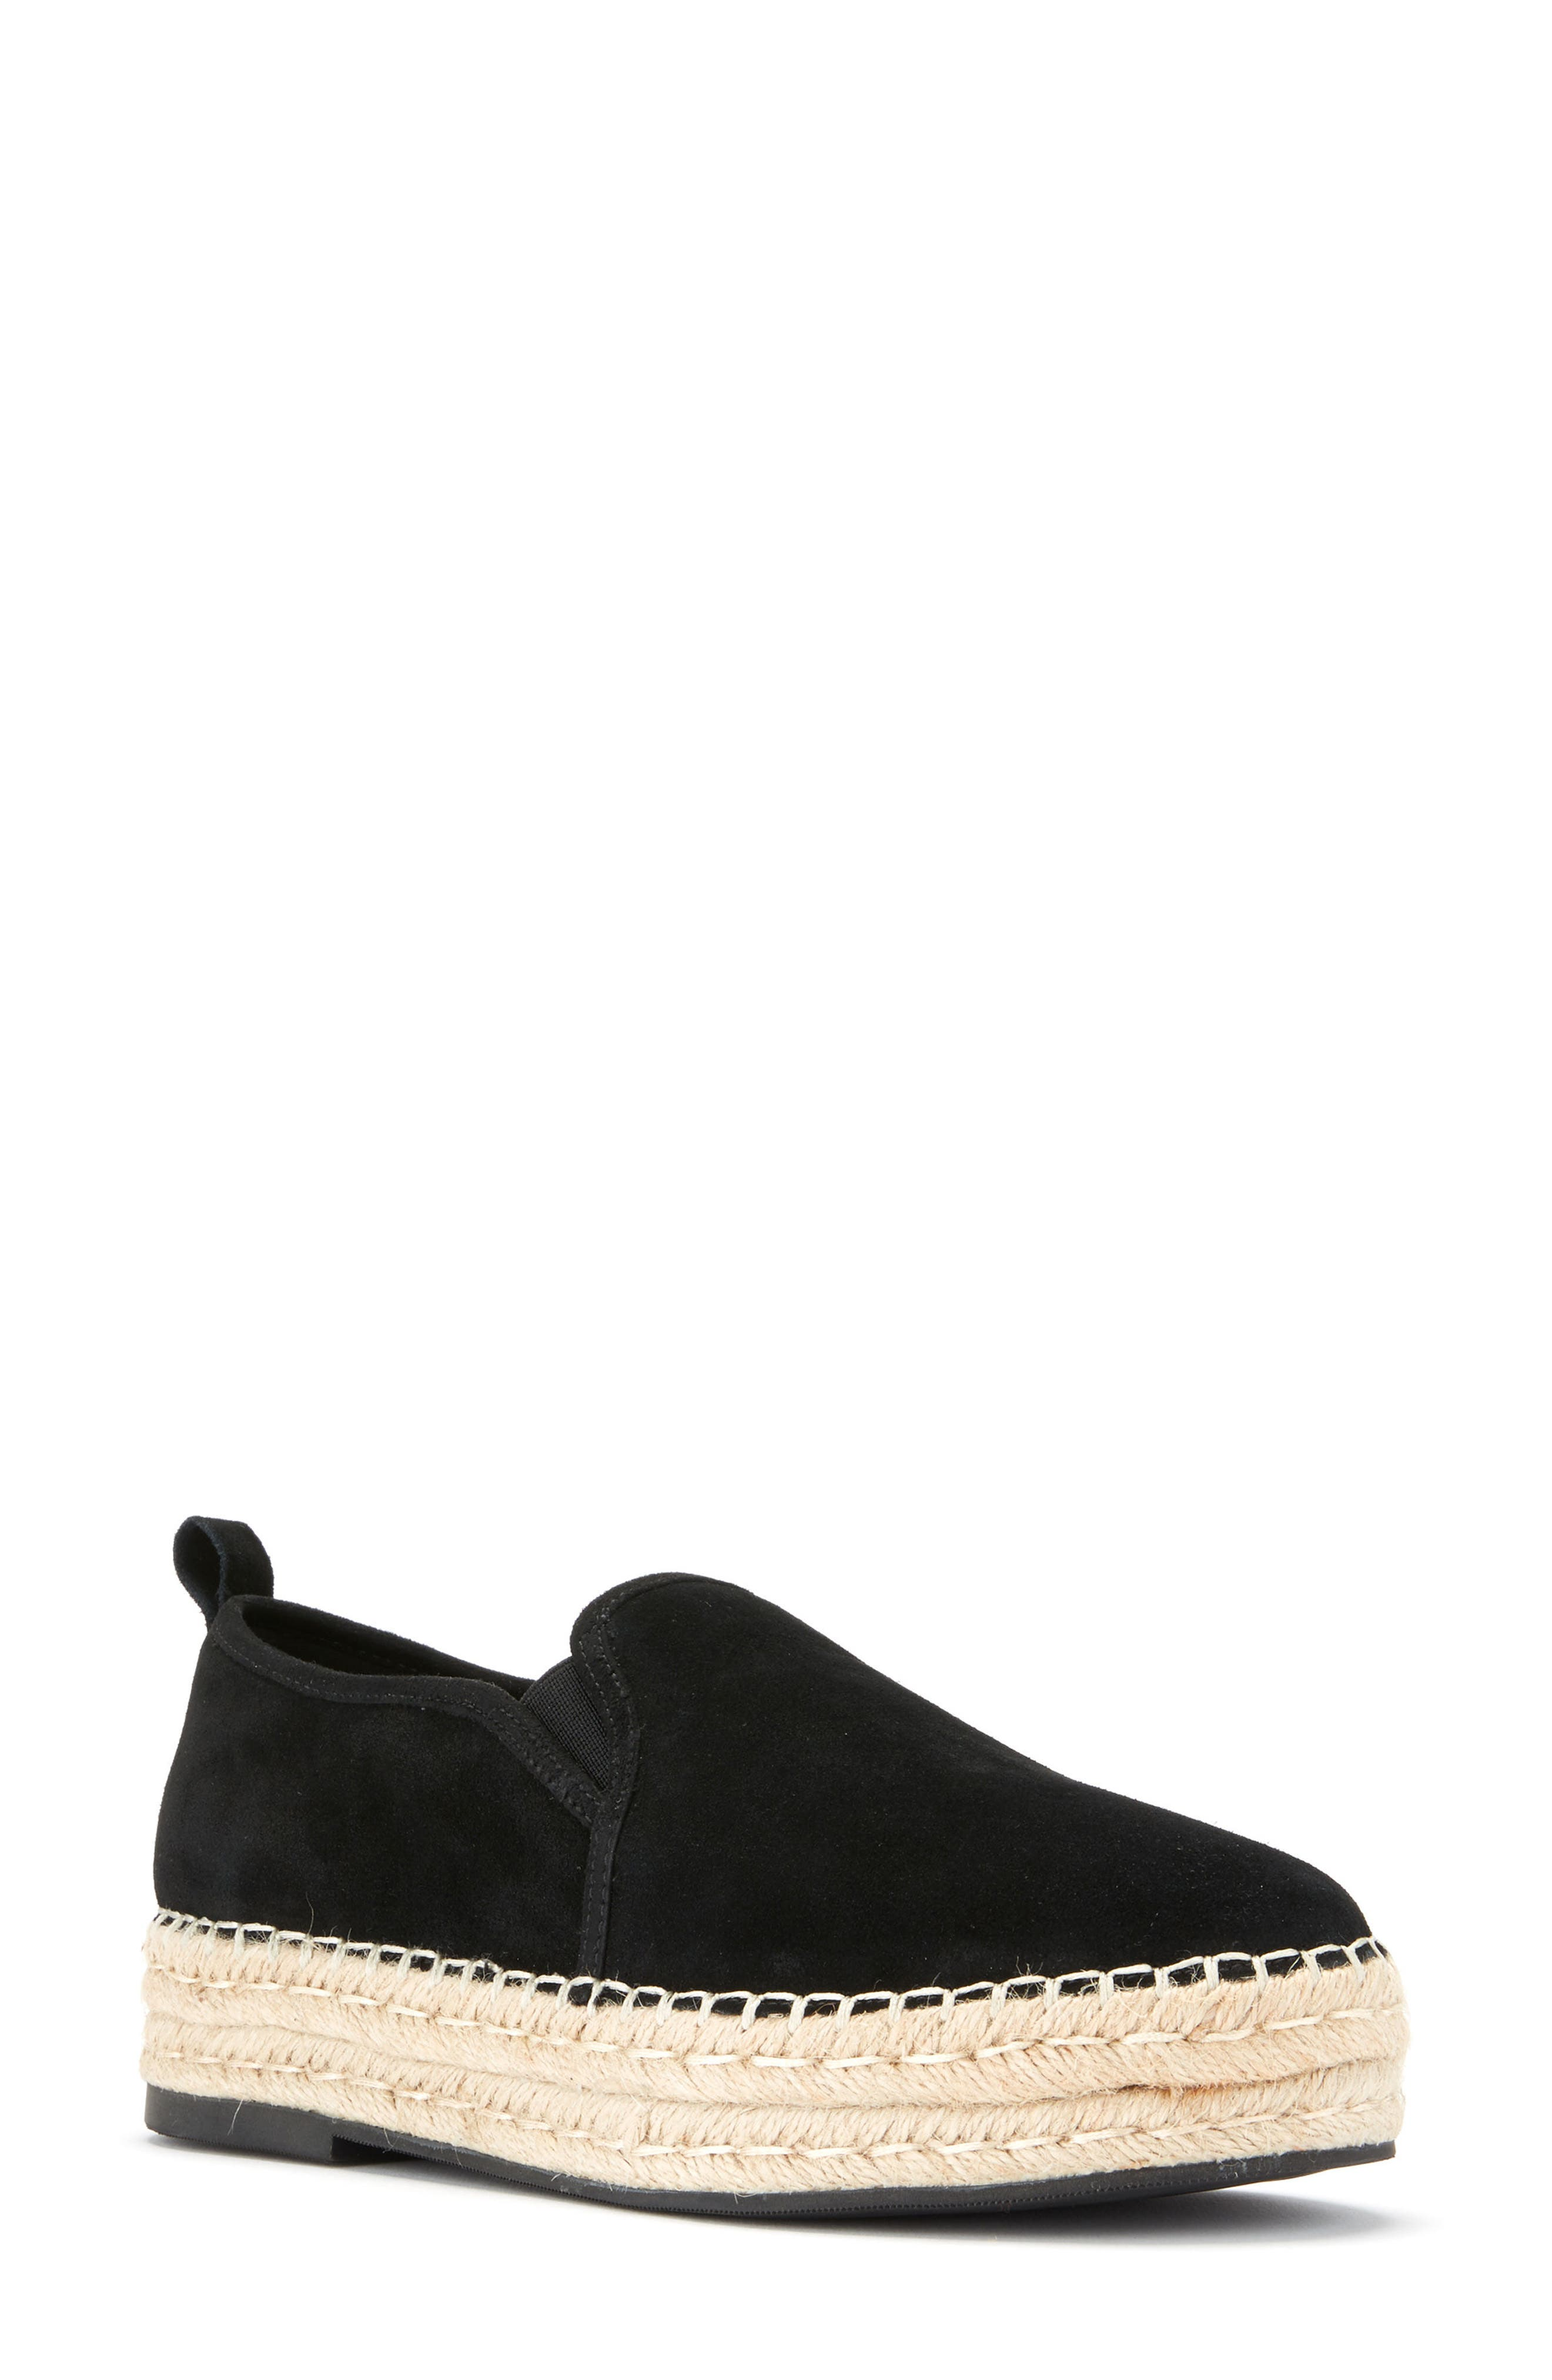 Basha Waterproof Espadrille Flat,                         Main,                         color, 015